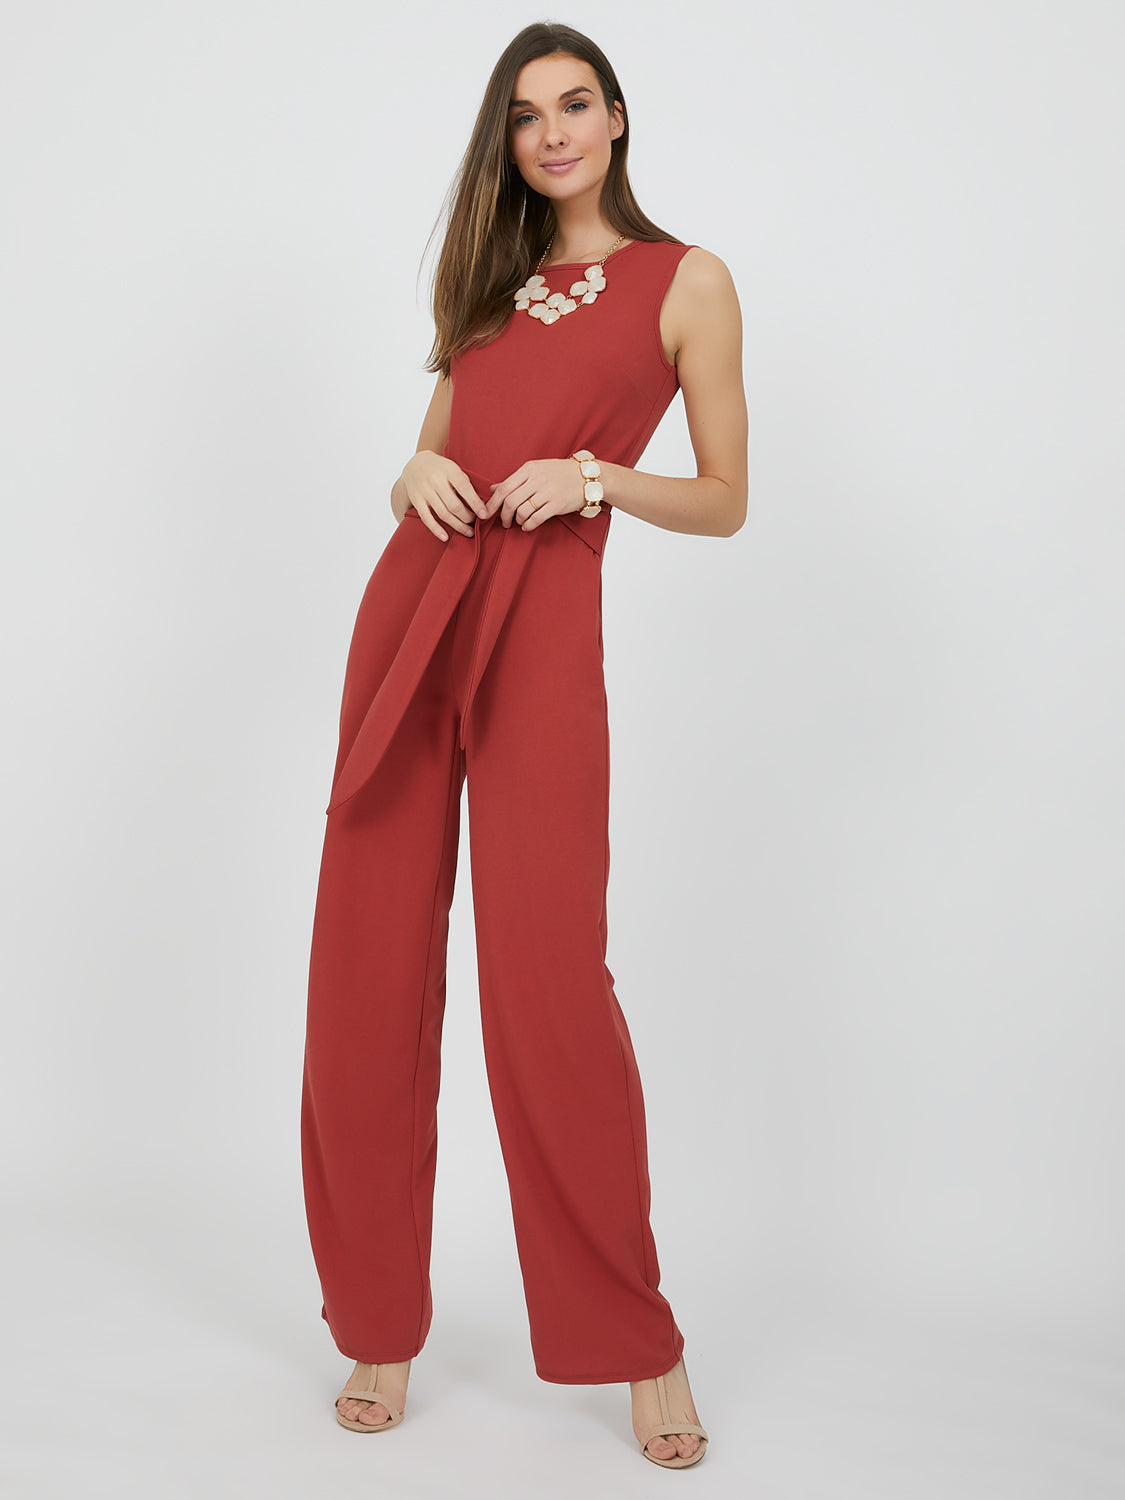 Sleeveless Sash-Tie Jumpsuit